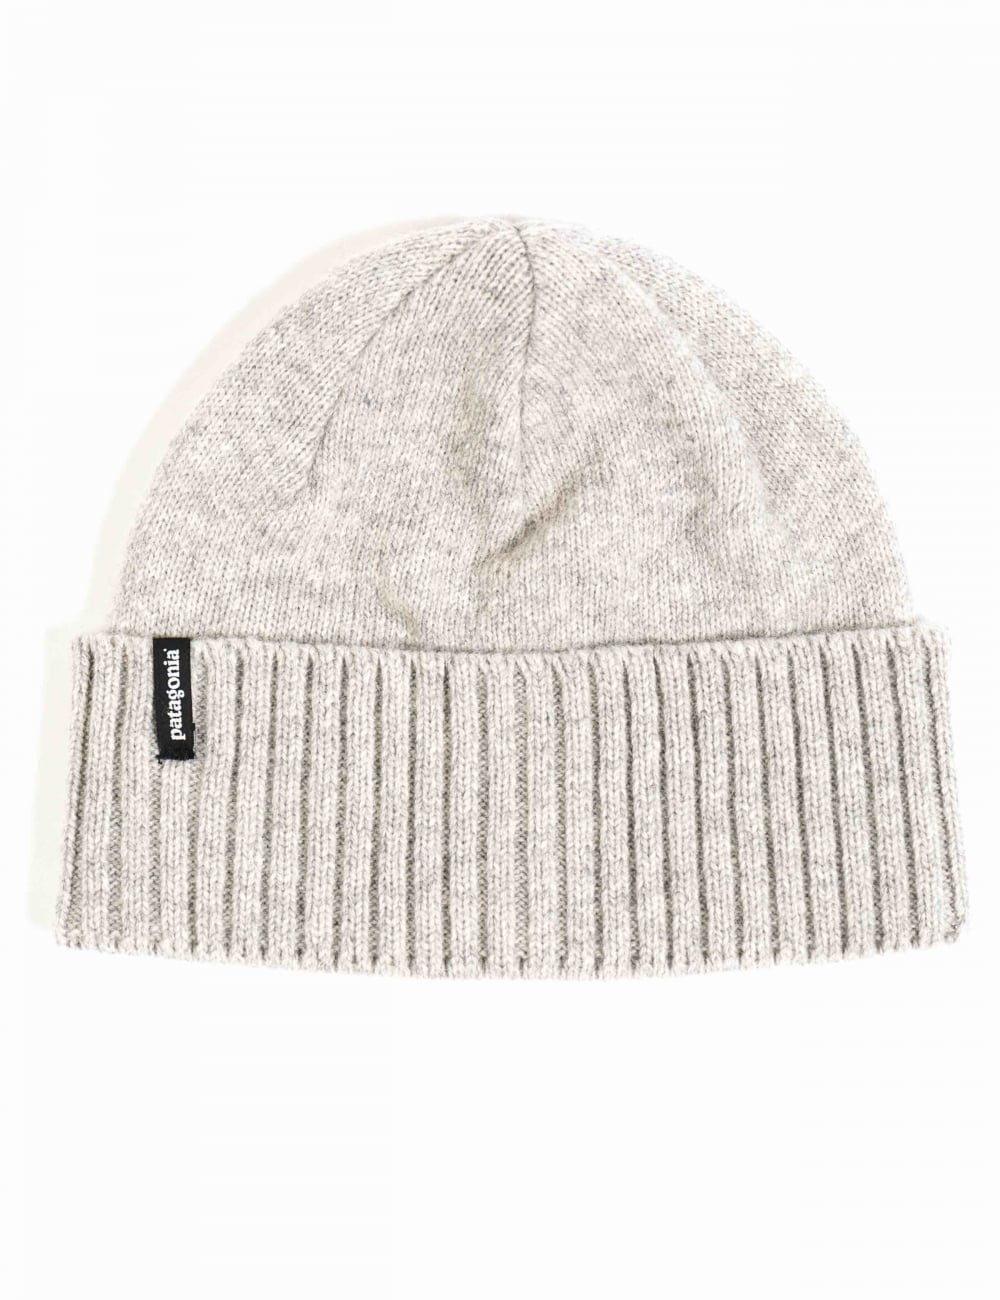 bba08430d4e Patagonia Brodeo Beanie - Drifter Grey - Accessories from Fat Buddha ...